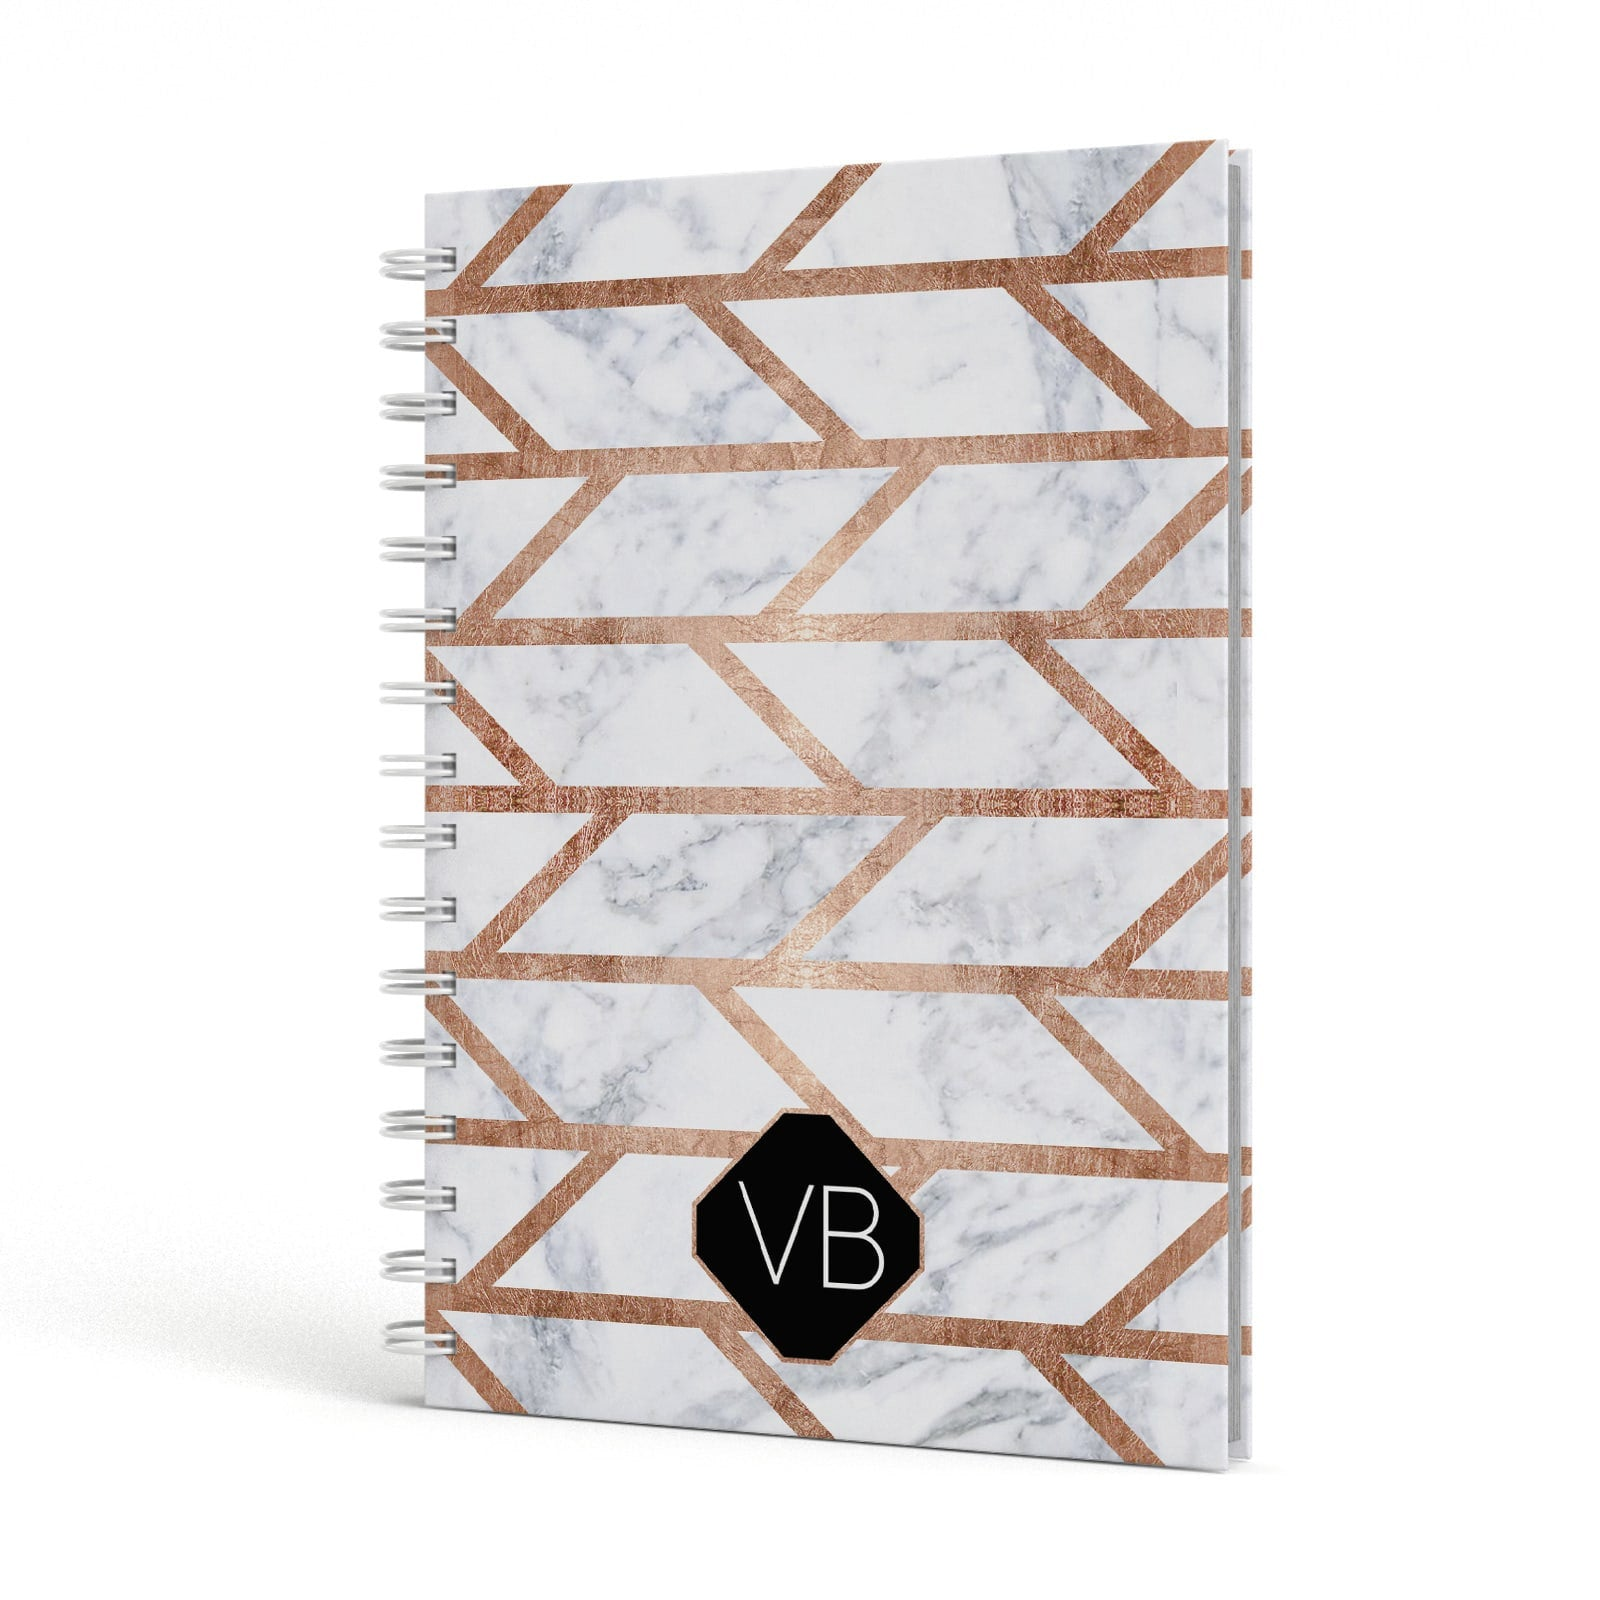 Personalised Rose Gold Faux Marble Initials A5 Hardcover Notebook Side View